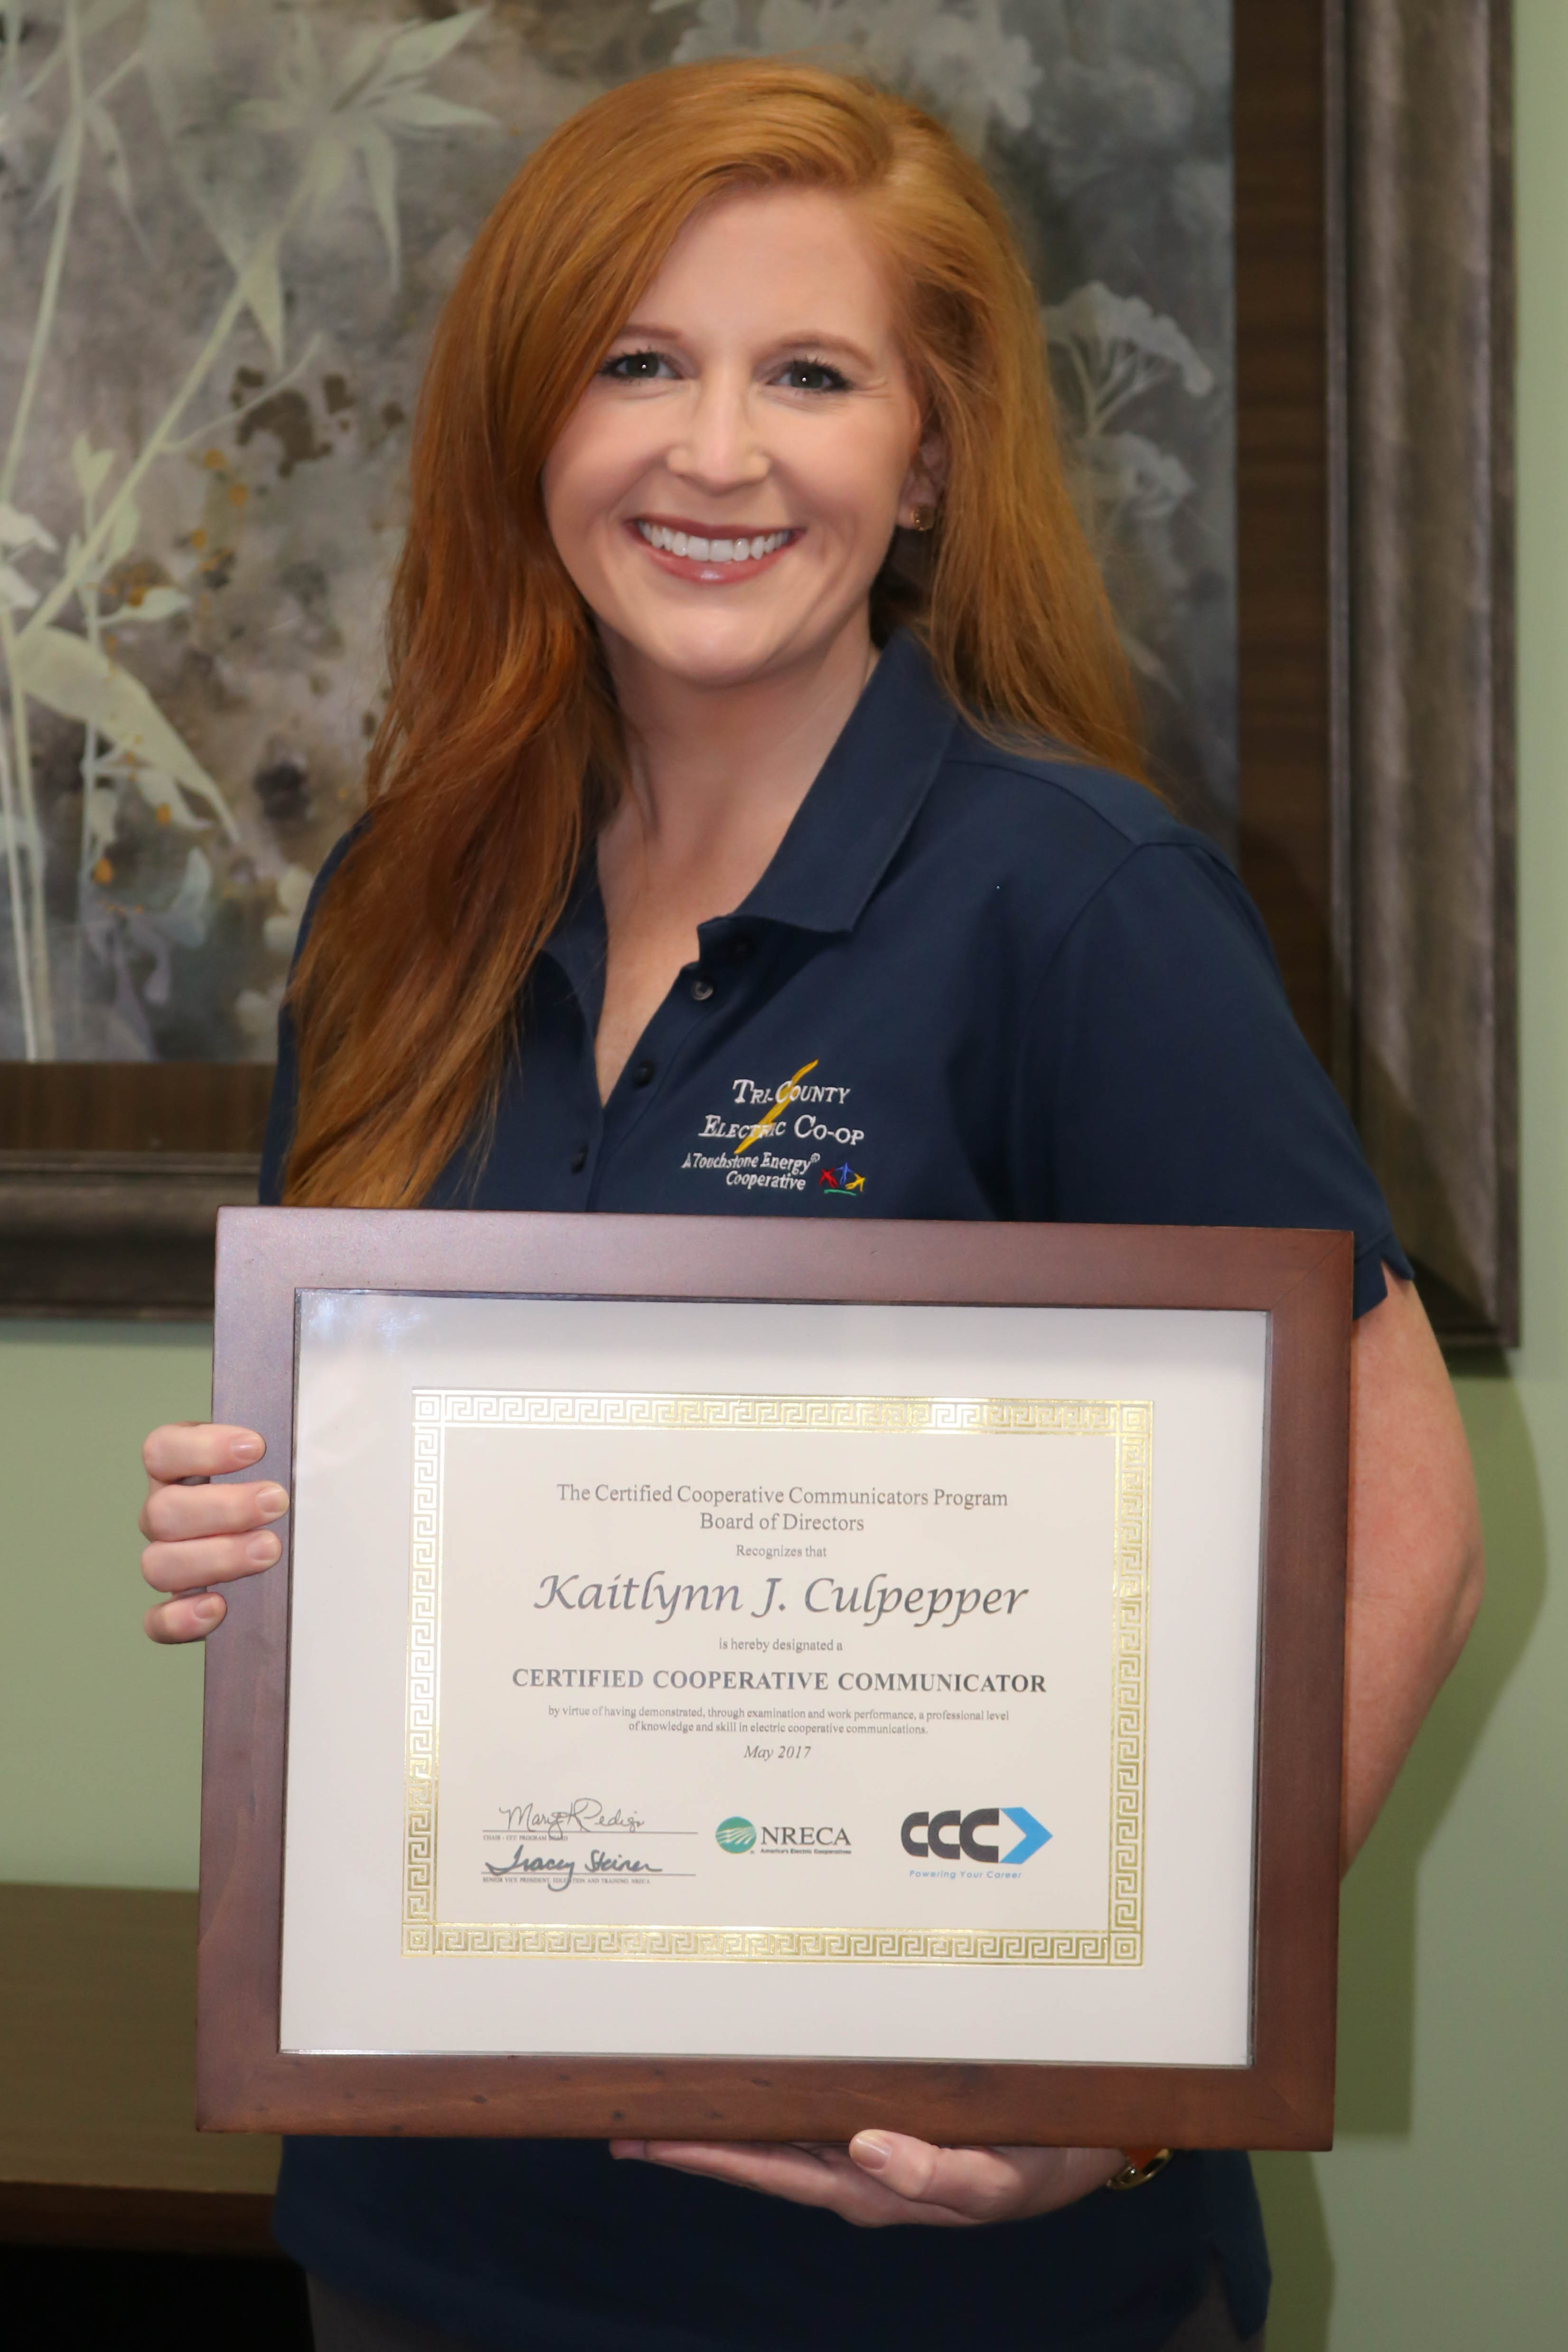 Kaitlynn Culpepper with her Certified Cooperative Communicators Certificate